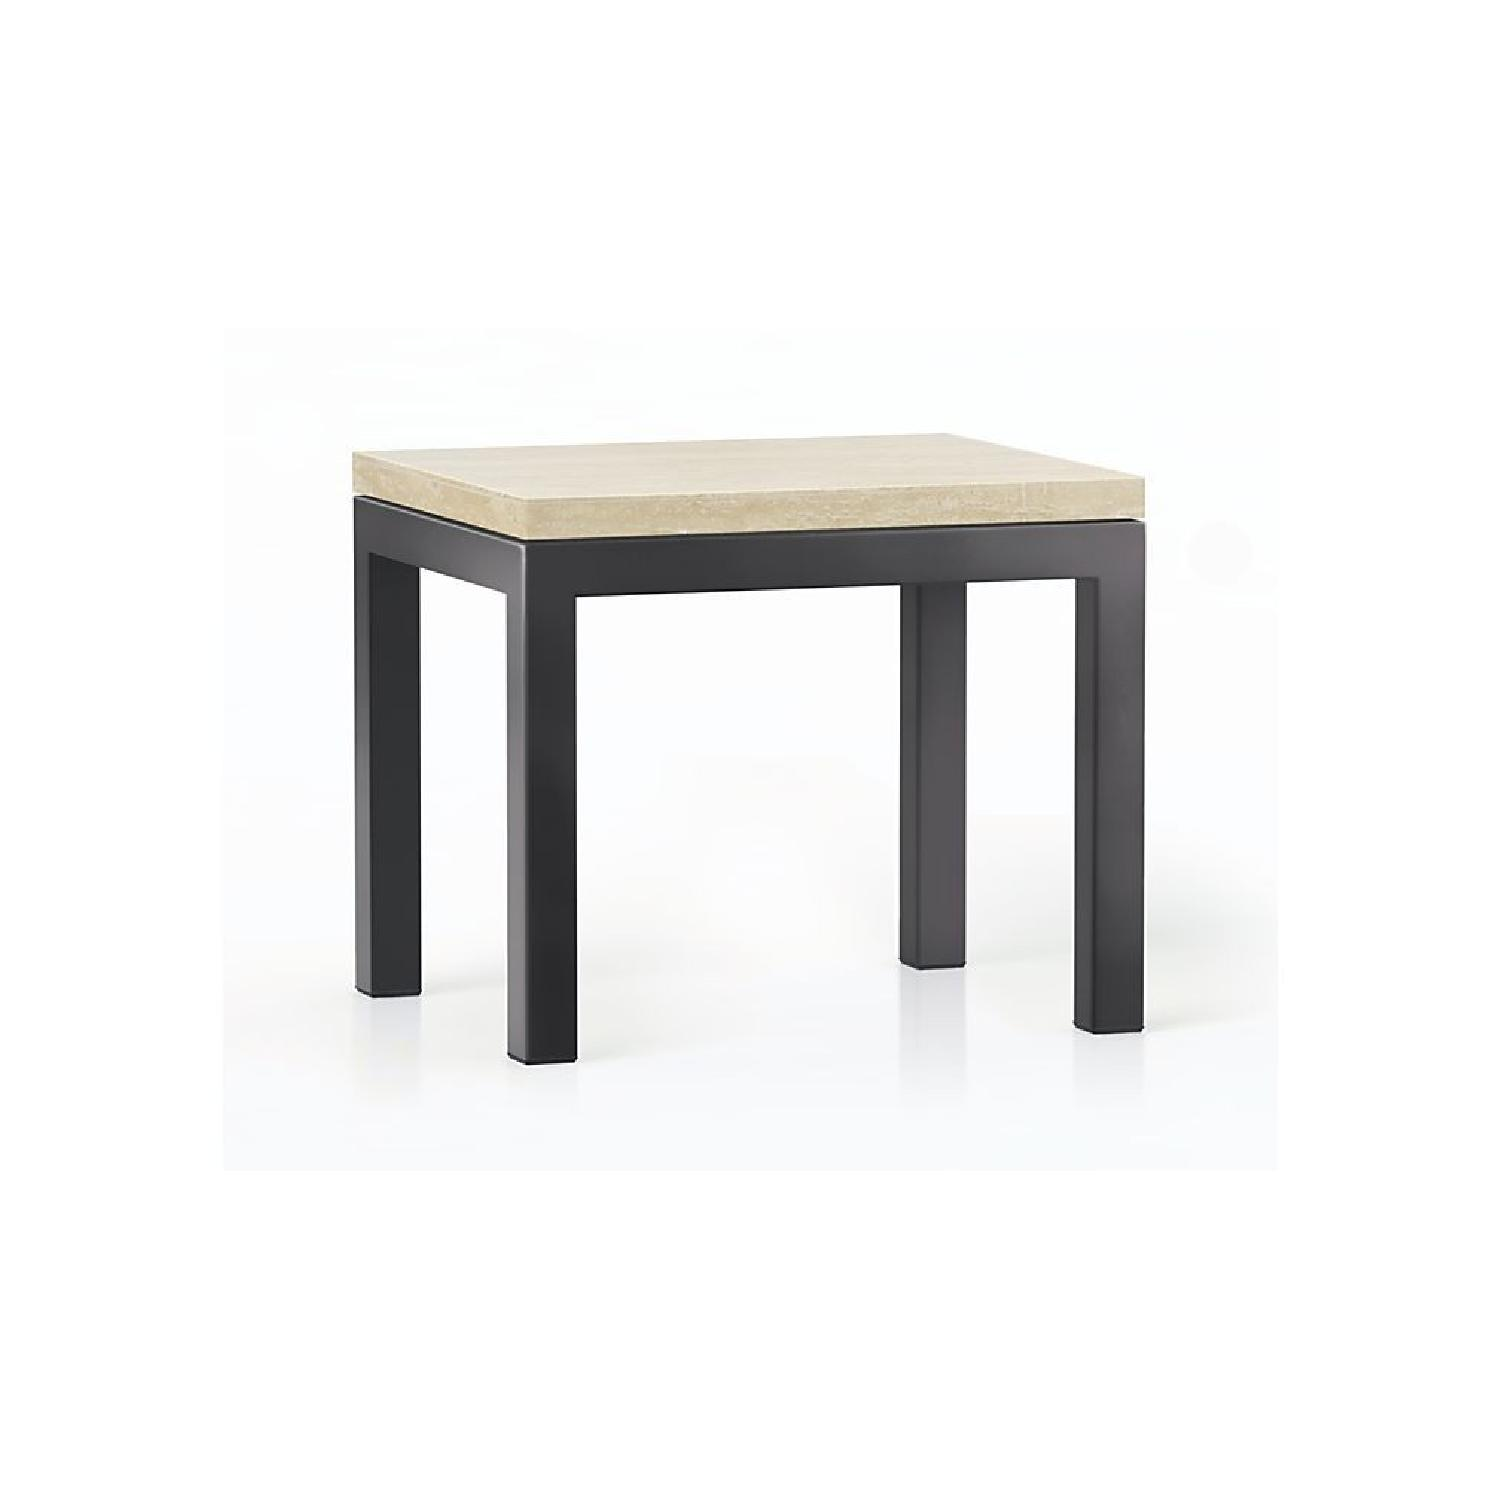 Crate & Barrel Travertine/Black Steel Side Table